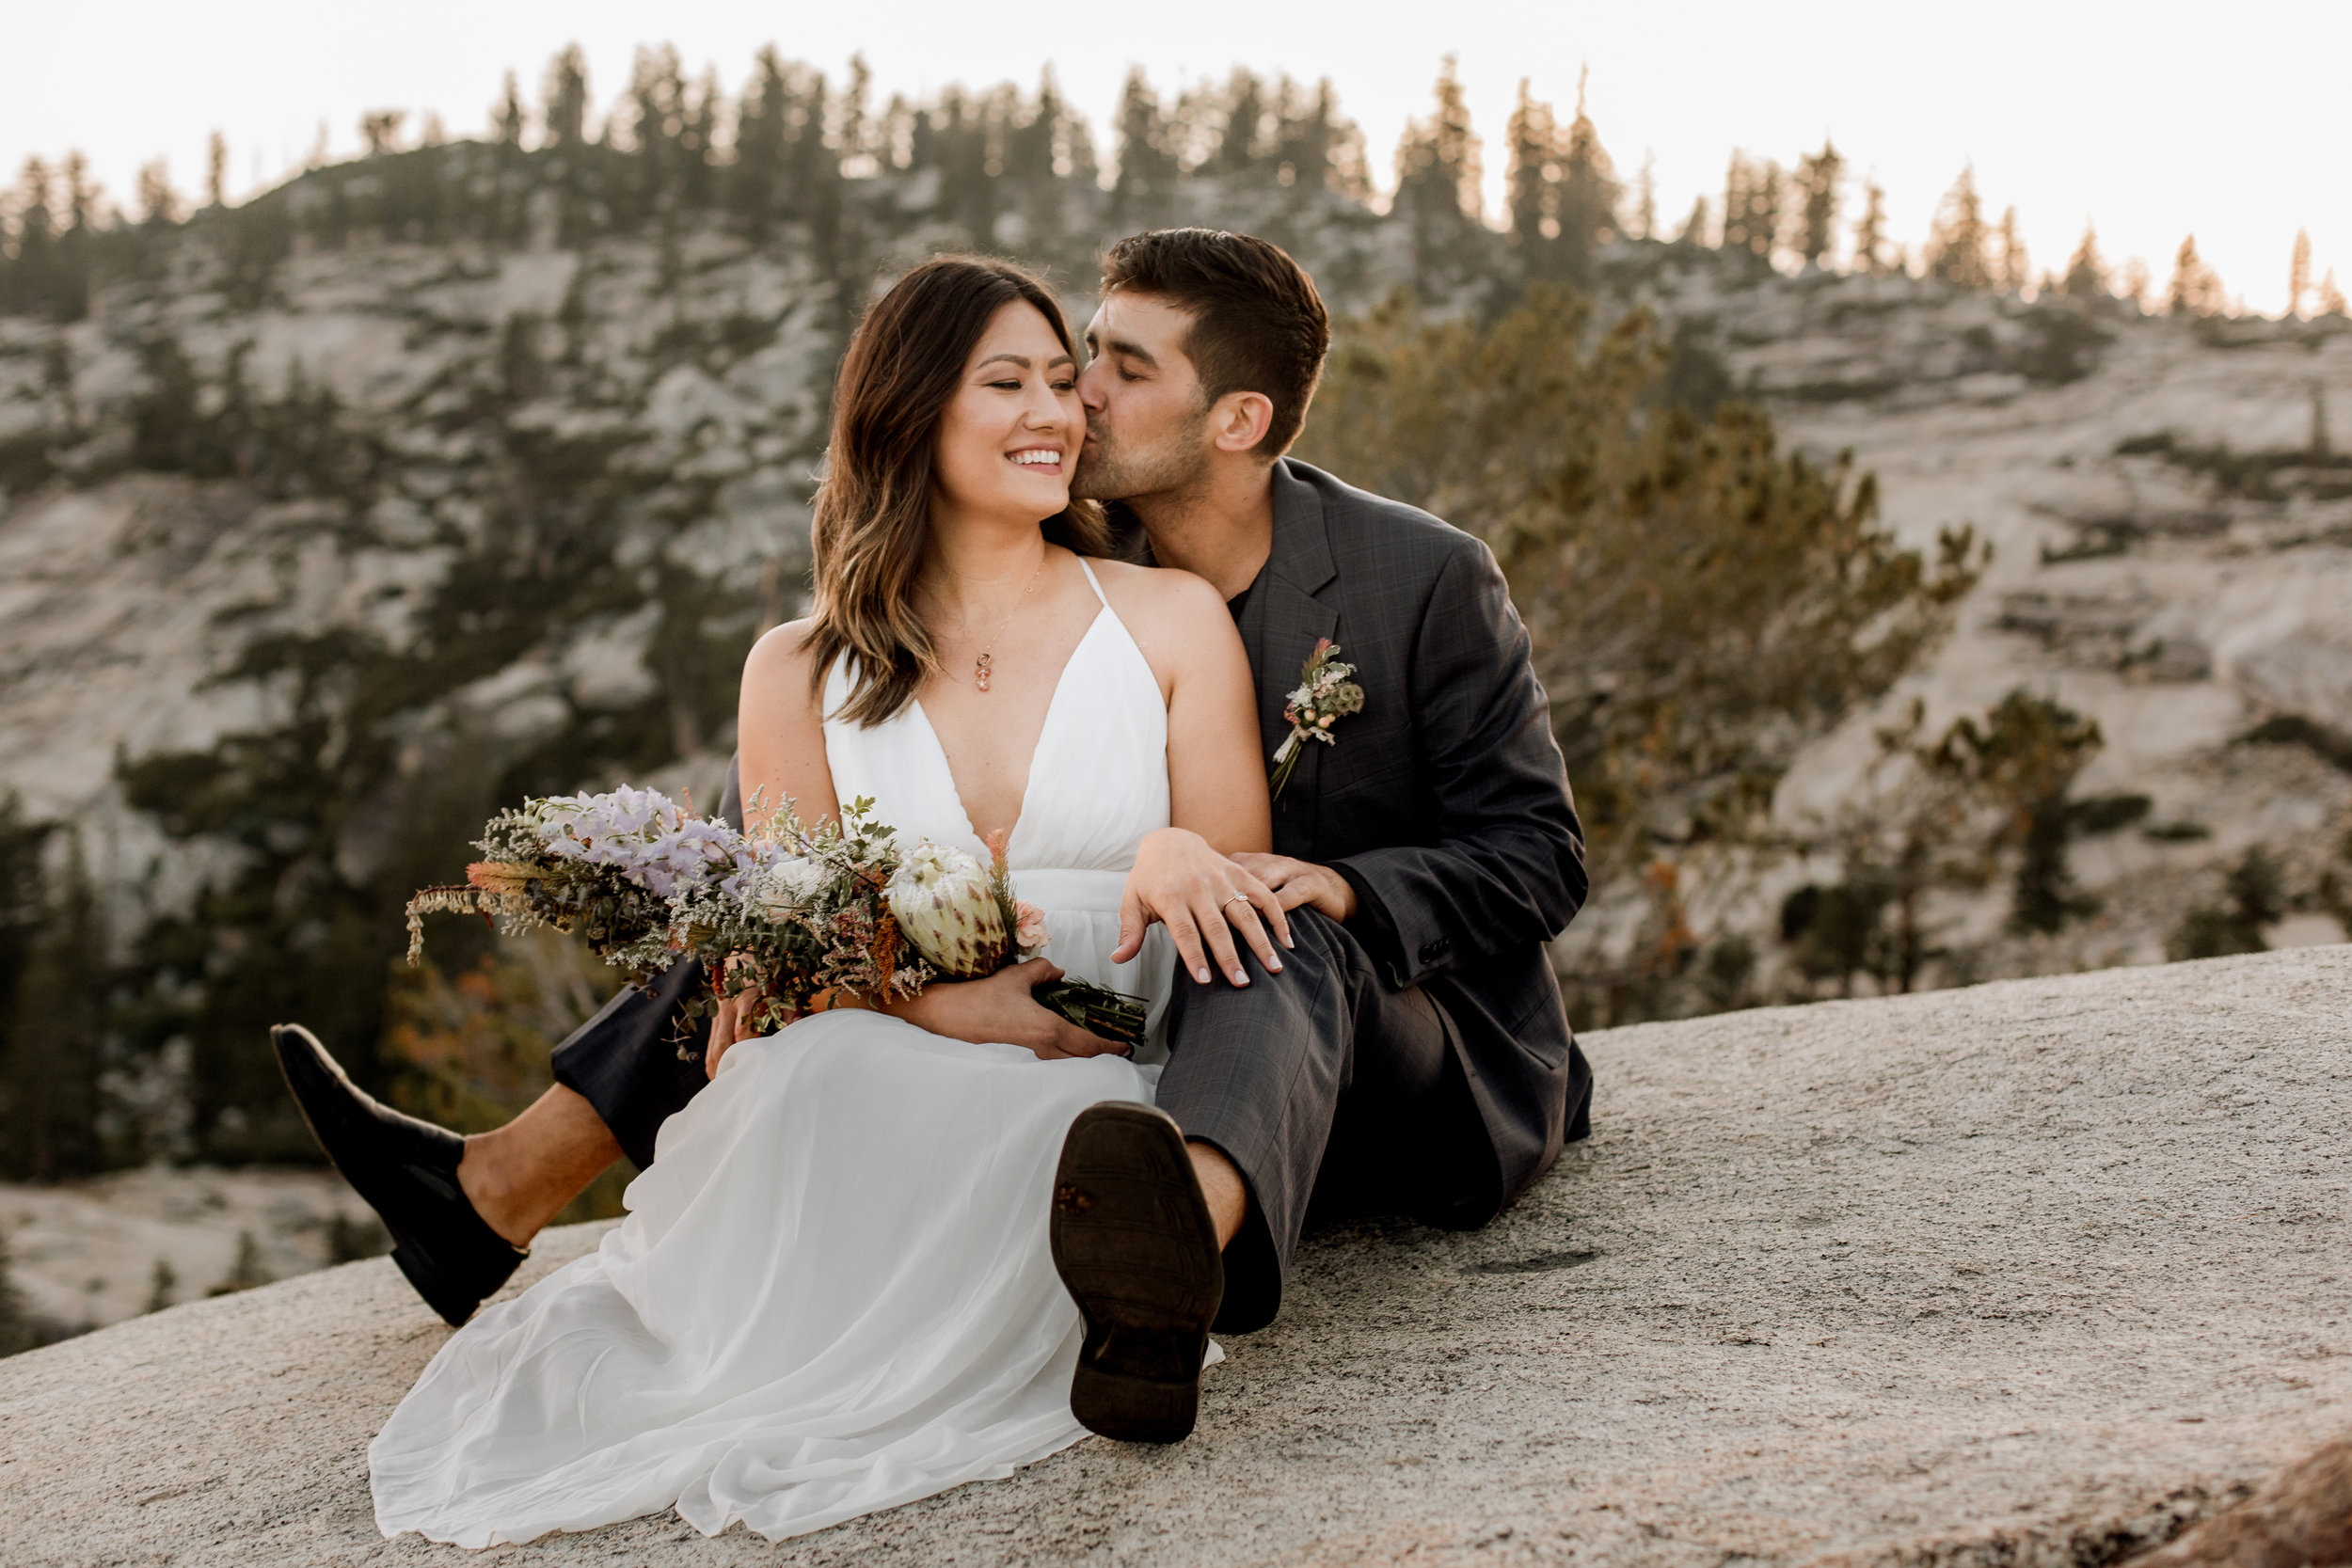 nicole-daacke-photography-yosemite-national-park-fall-elopement-adventurous-free-spirit-boho-bohemian-elopement-olmsted-point-yosemite-california-elope-adventure-elopement-photographer-48.jpg